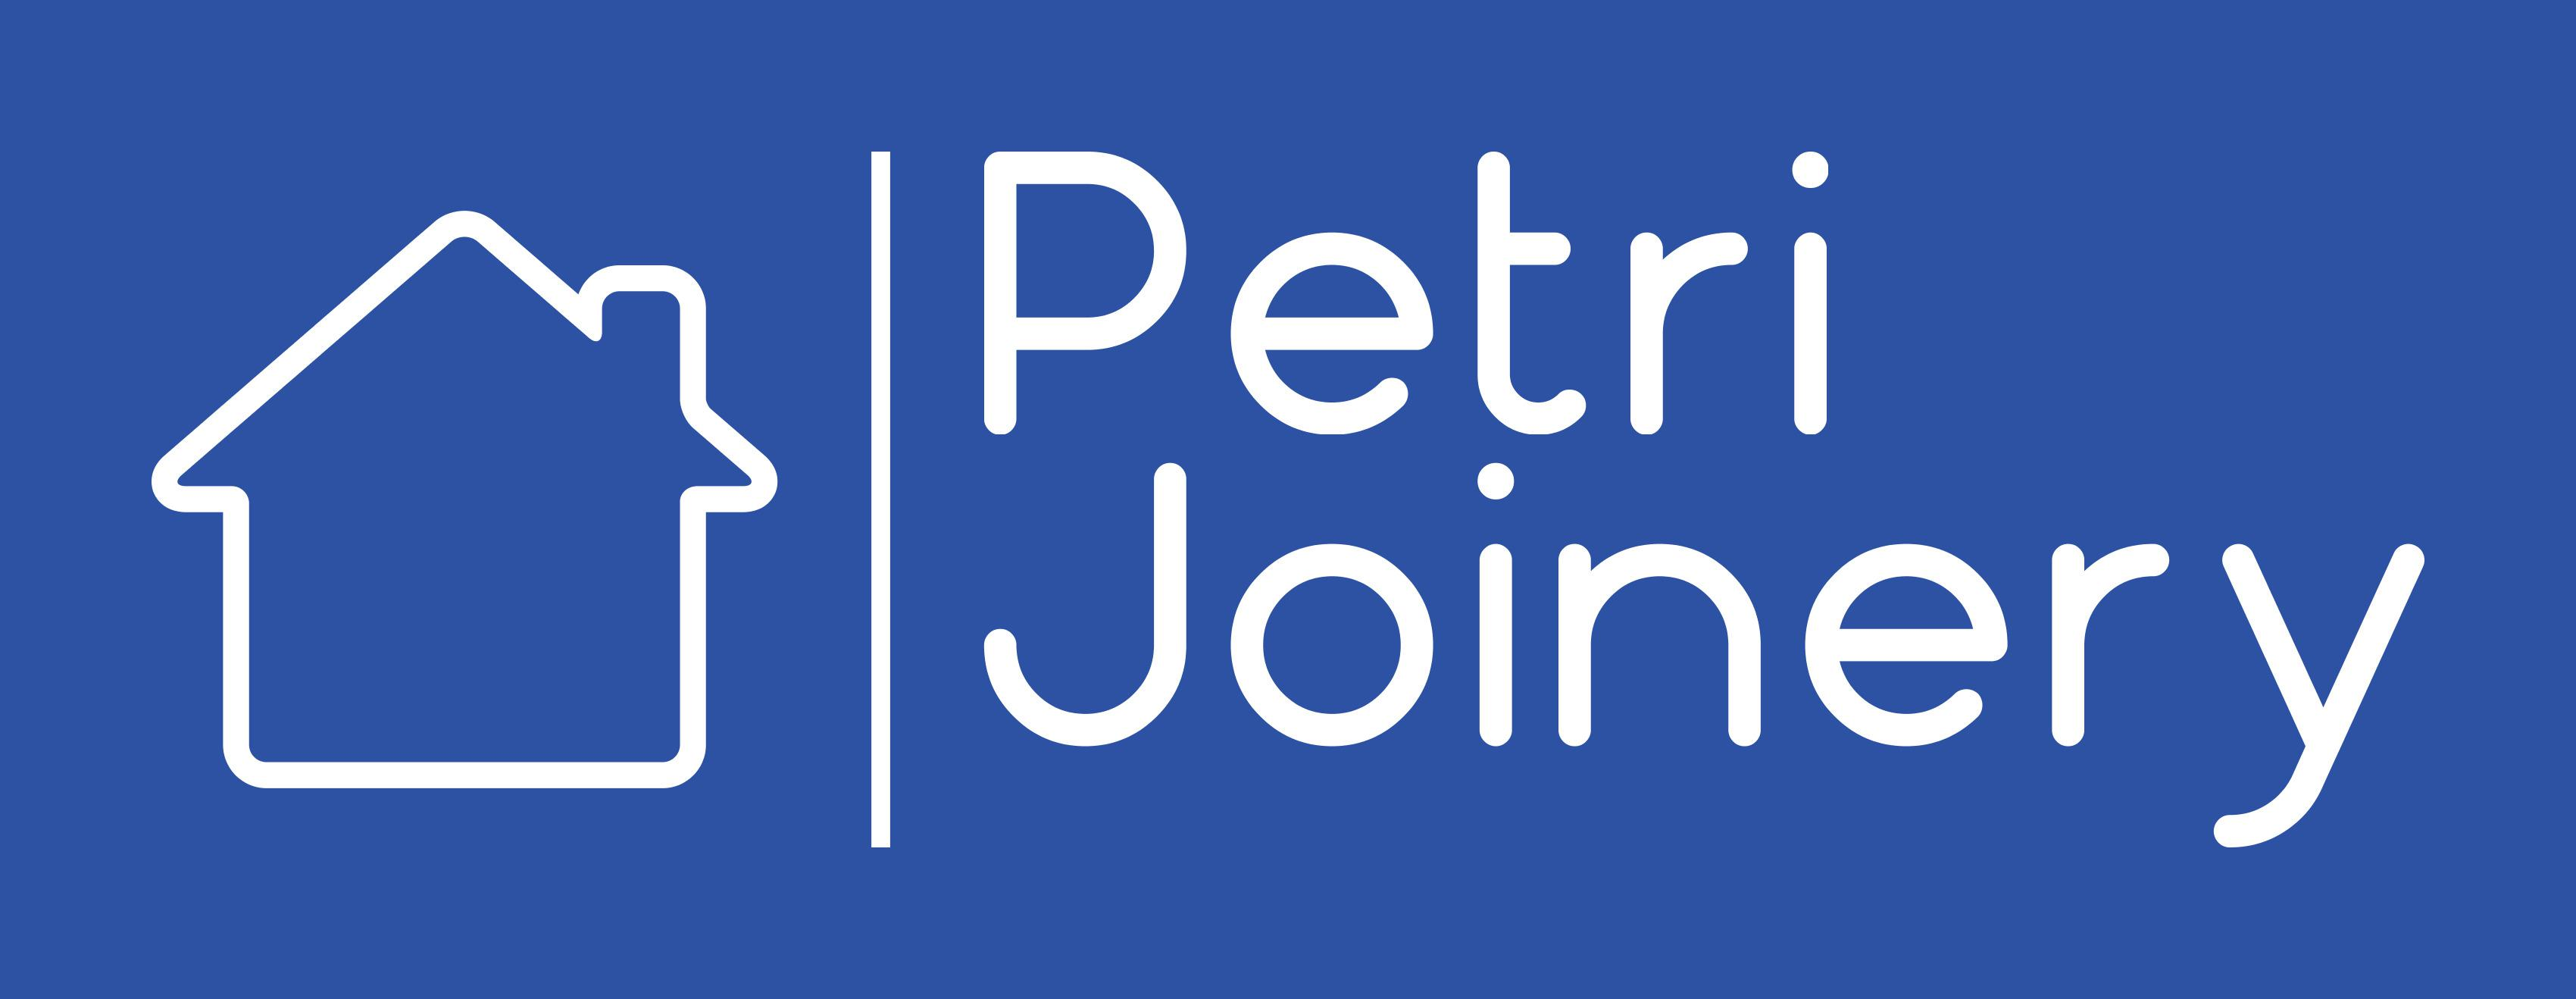 Petri Joinery Logo